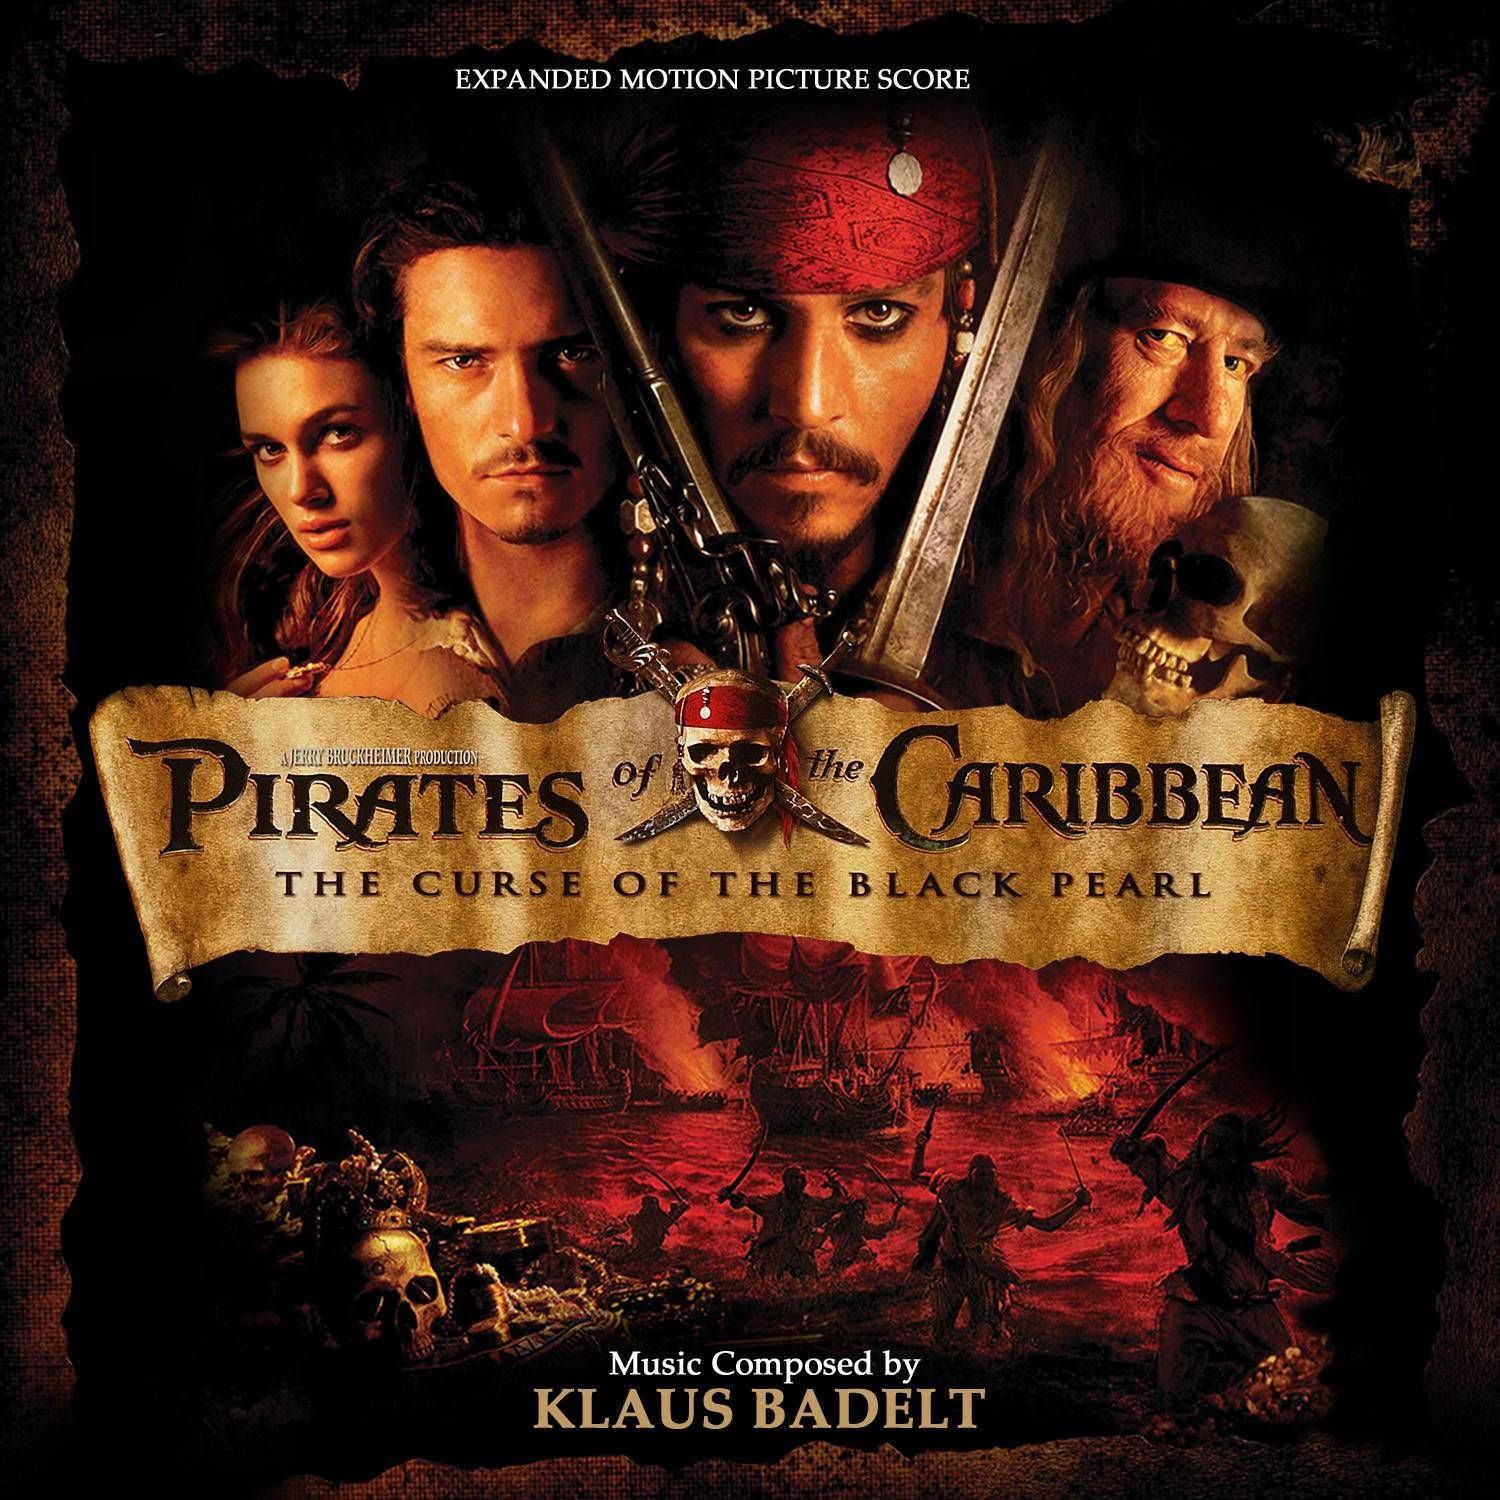 Pirates of the caribbean 3 soundtrack parlay betting free betting picks